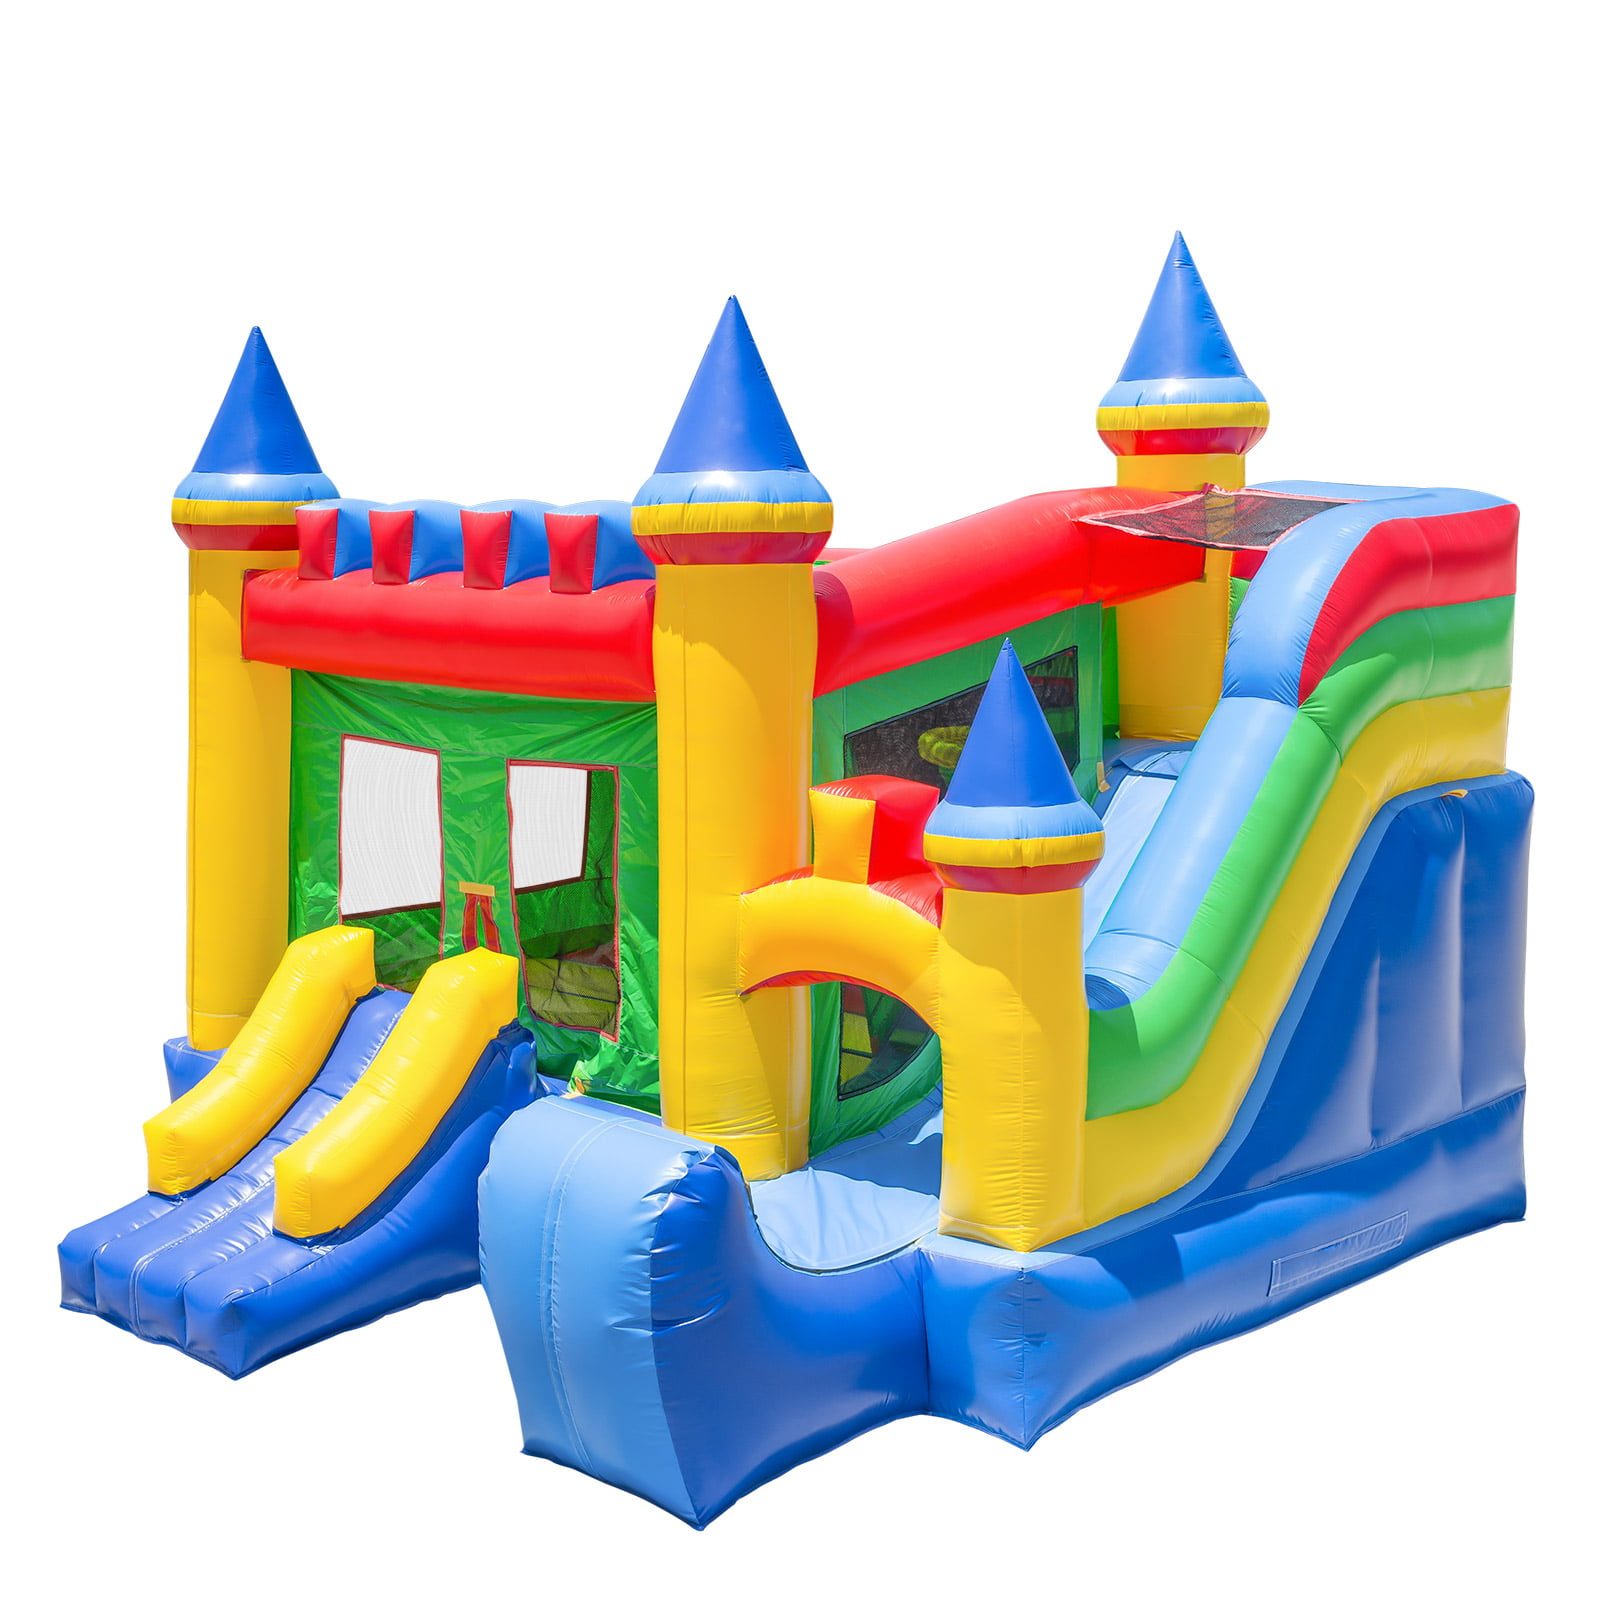 Inflatable HQ Commercial Grade Bouncing Castle Kingdom Bounce House 100% PVC with Blower and Slide by Inflatable HQ